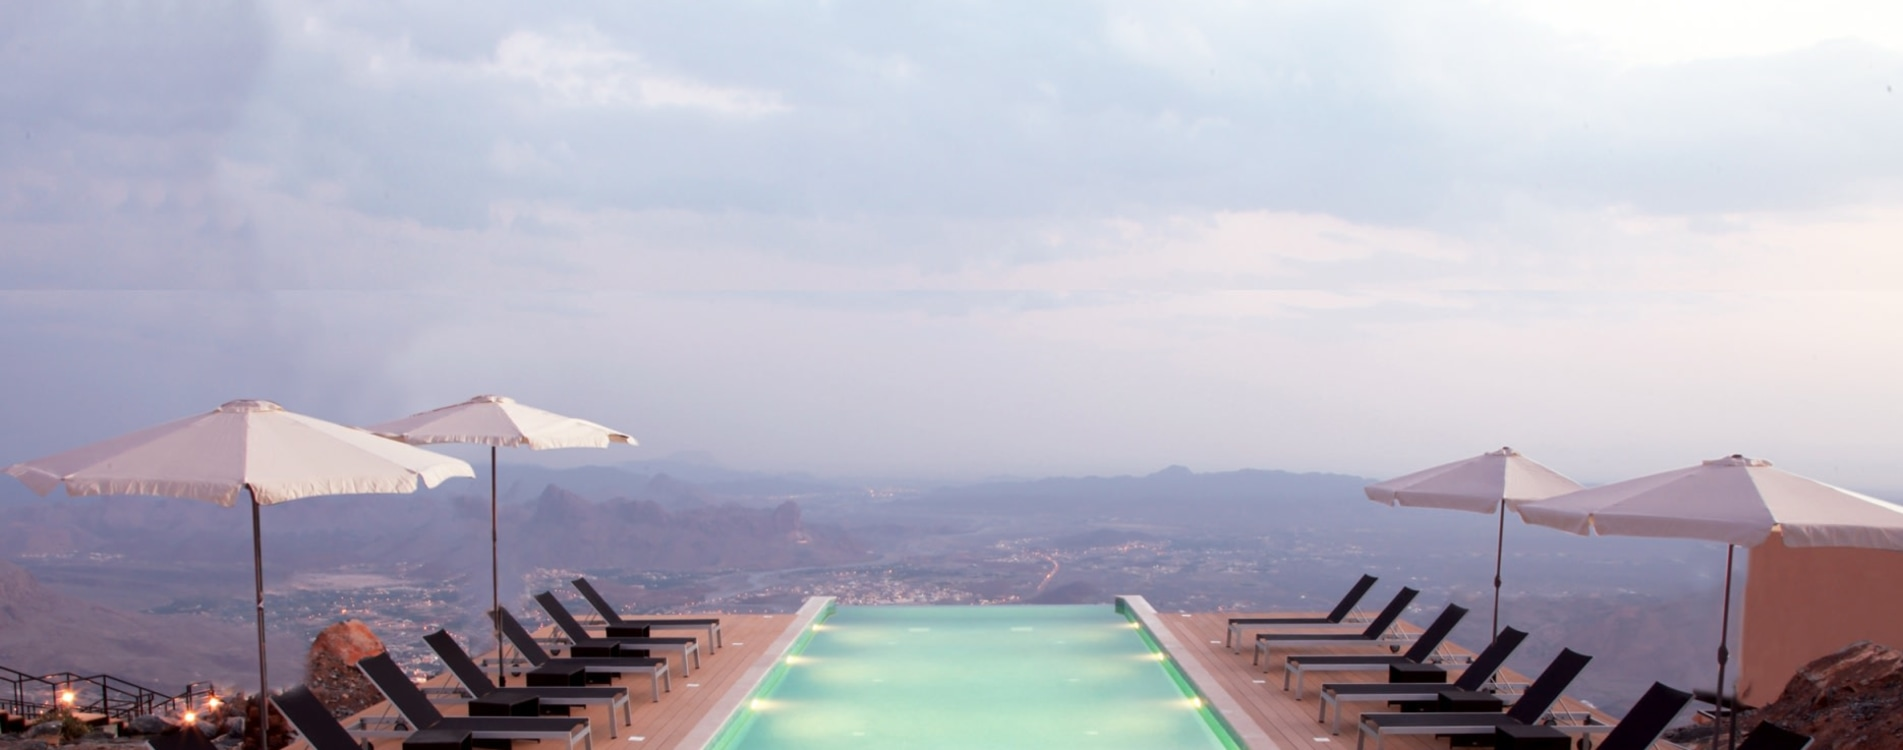 The-View-Oman-Infinity-Edge-Pool-Sonnenliegen.jpg